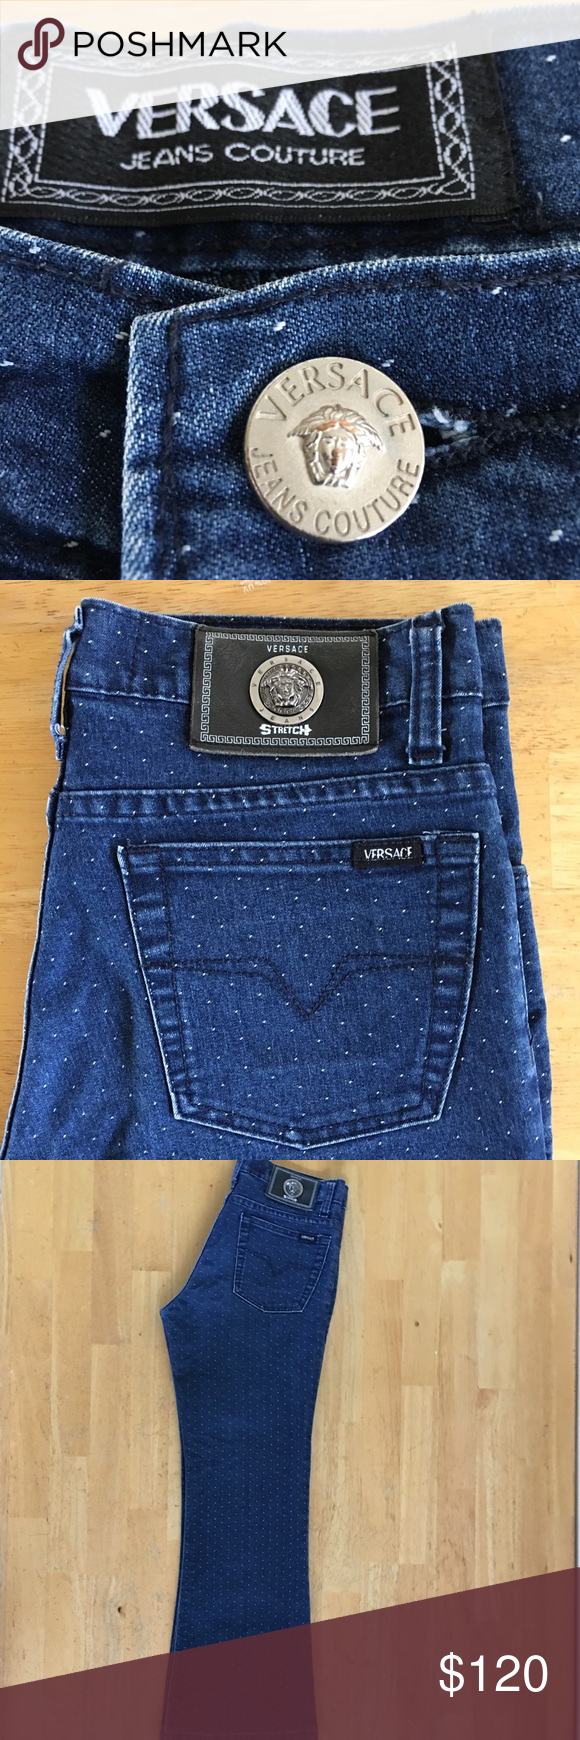 Spotted while shopping on Poshmark  VERSACE Couture Jeans N. 059899!   poshmark  fashion  shopping  style  versace Jeans Couture  Denim 722aad2257